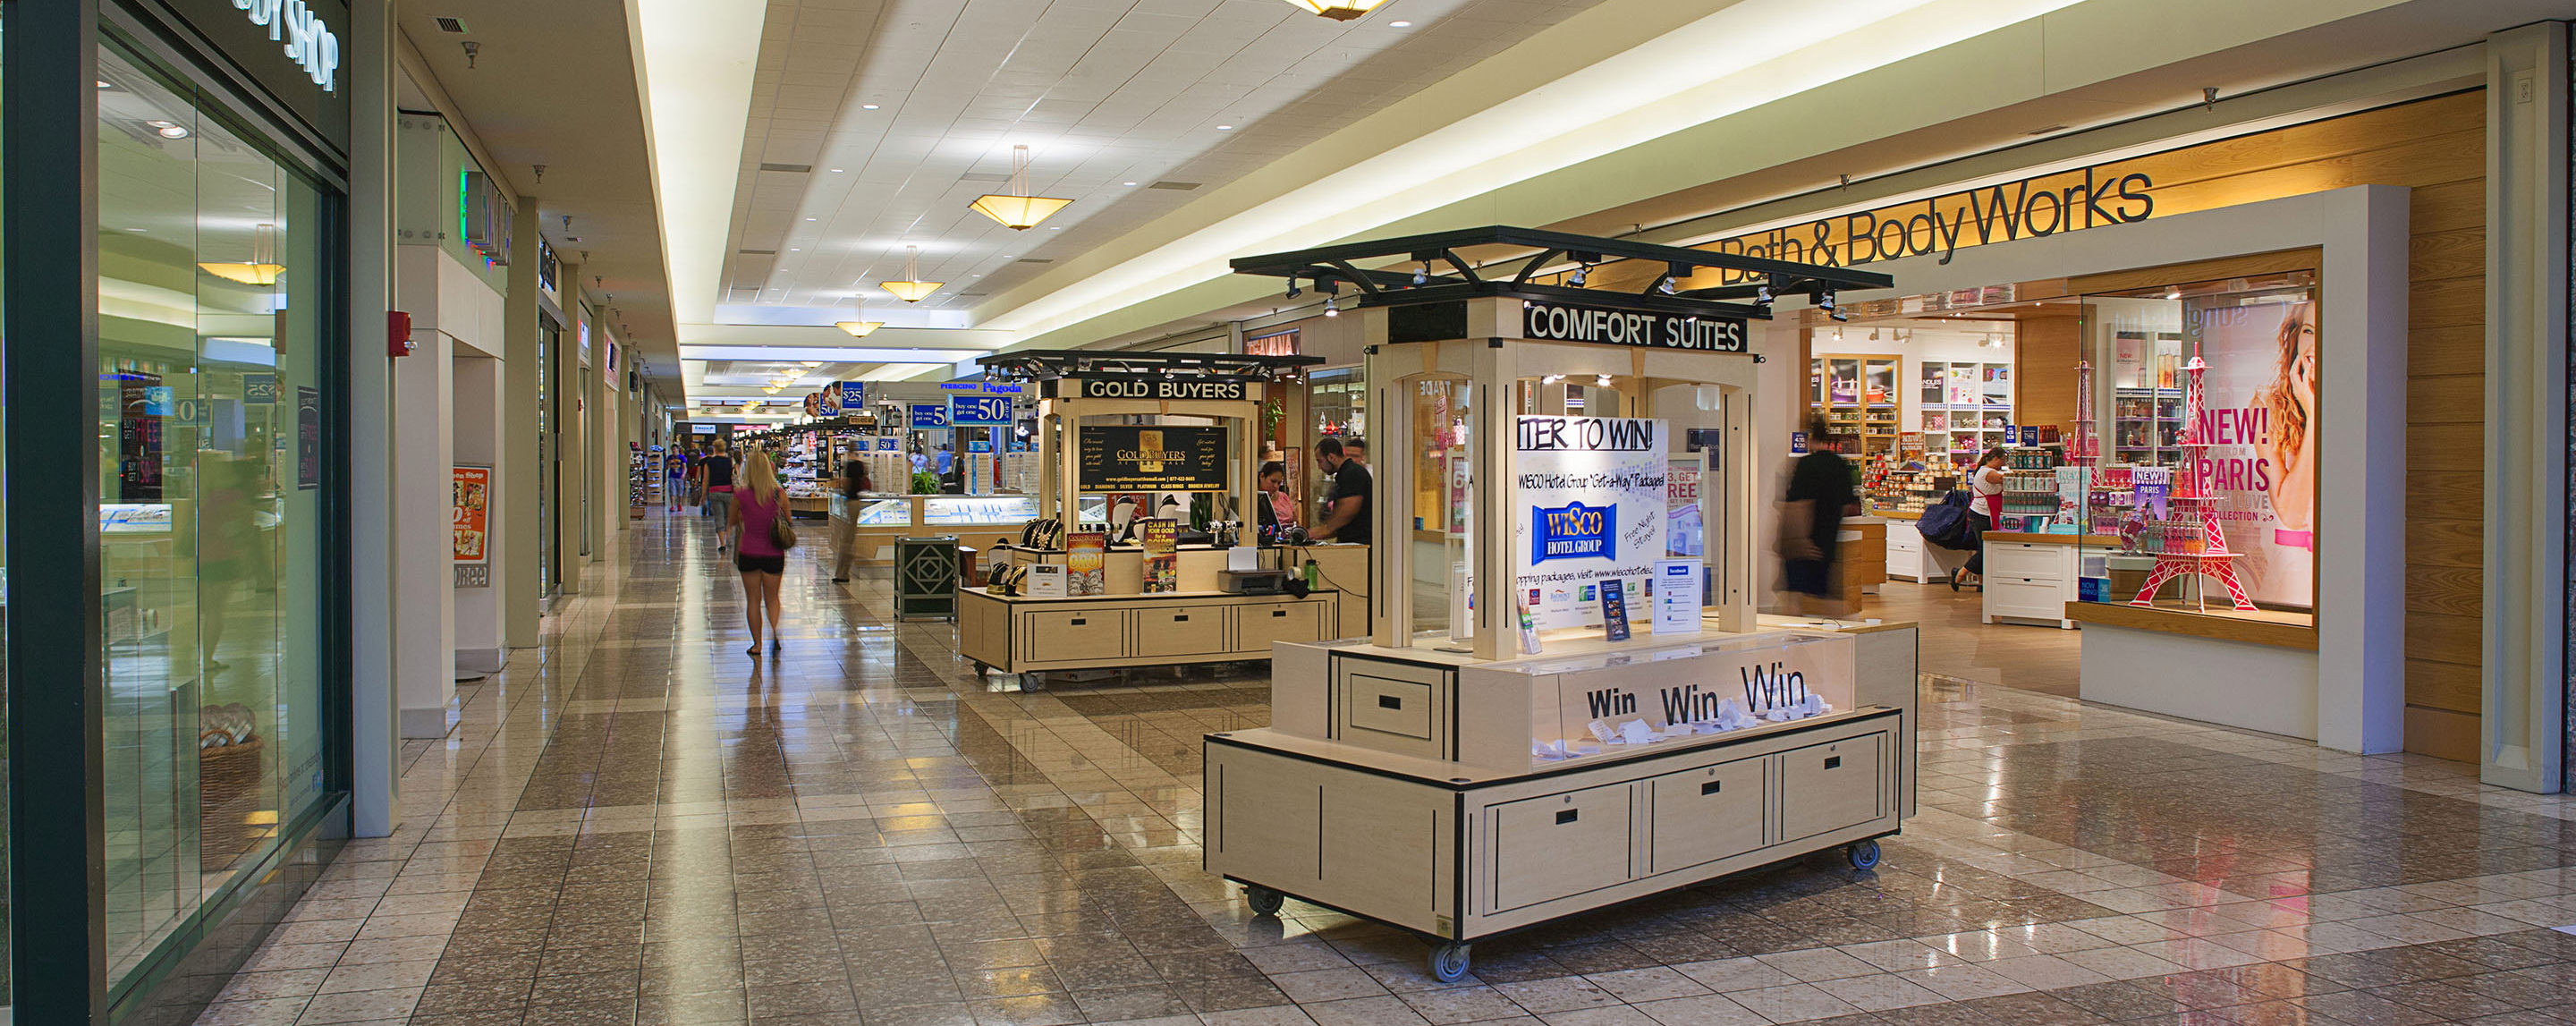 Inside a Fox River Mall walkway, kiosks fill the common area as shoppers walk by and browse at store fronts.